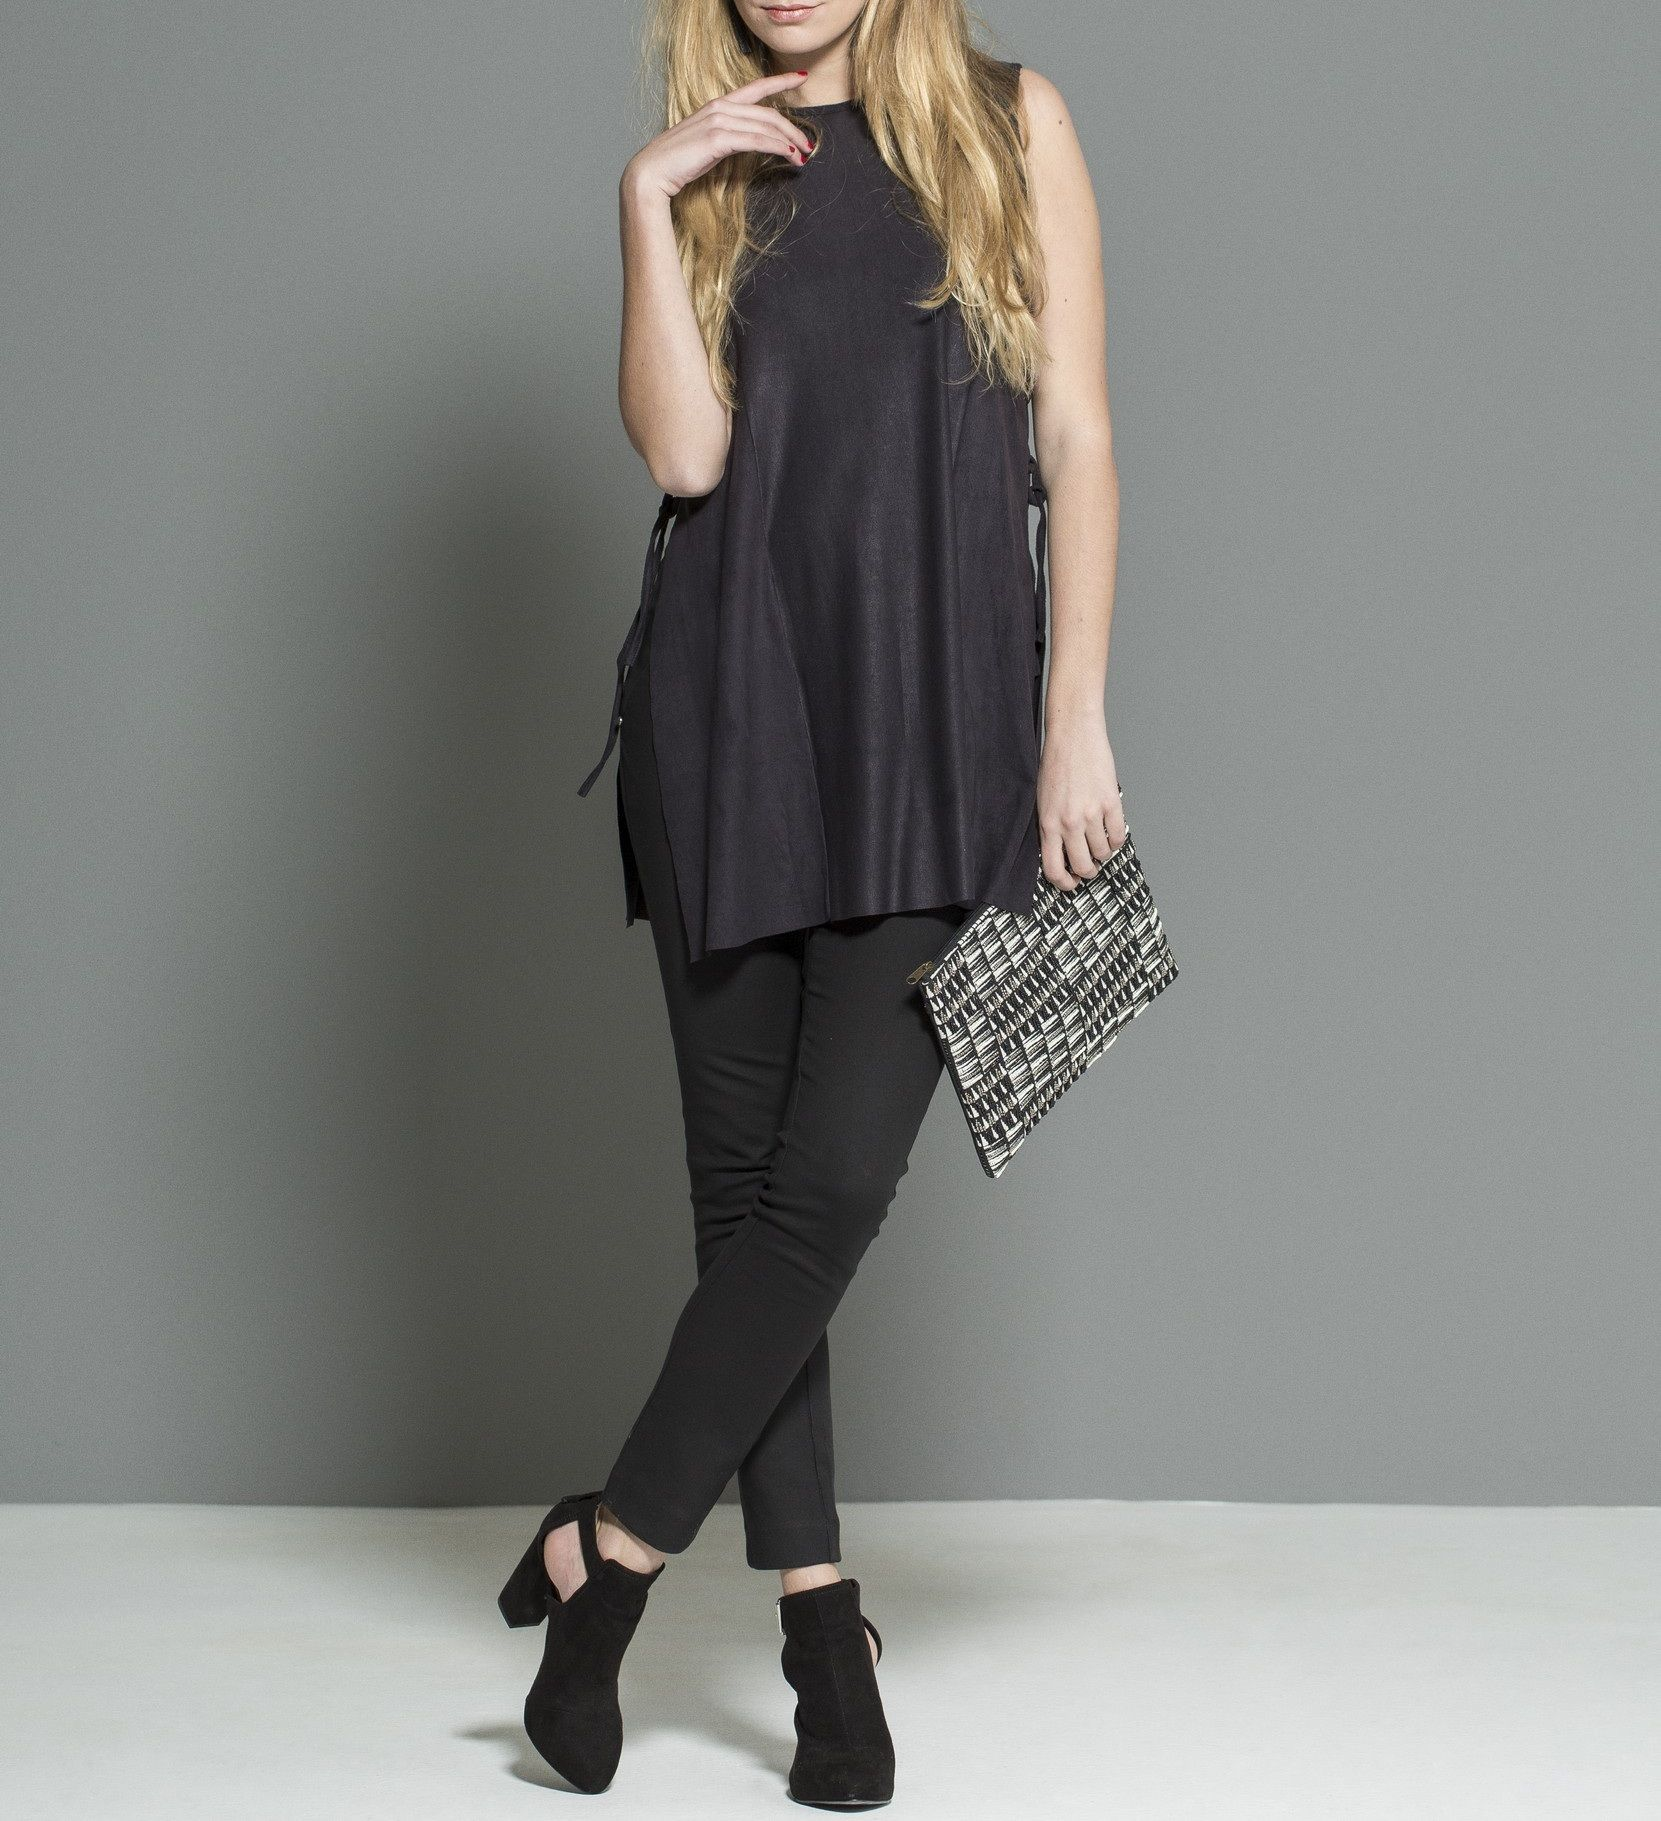 T suede lace on the sides #T-shirt #black #woman #suede